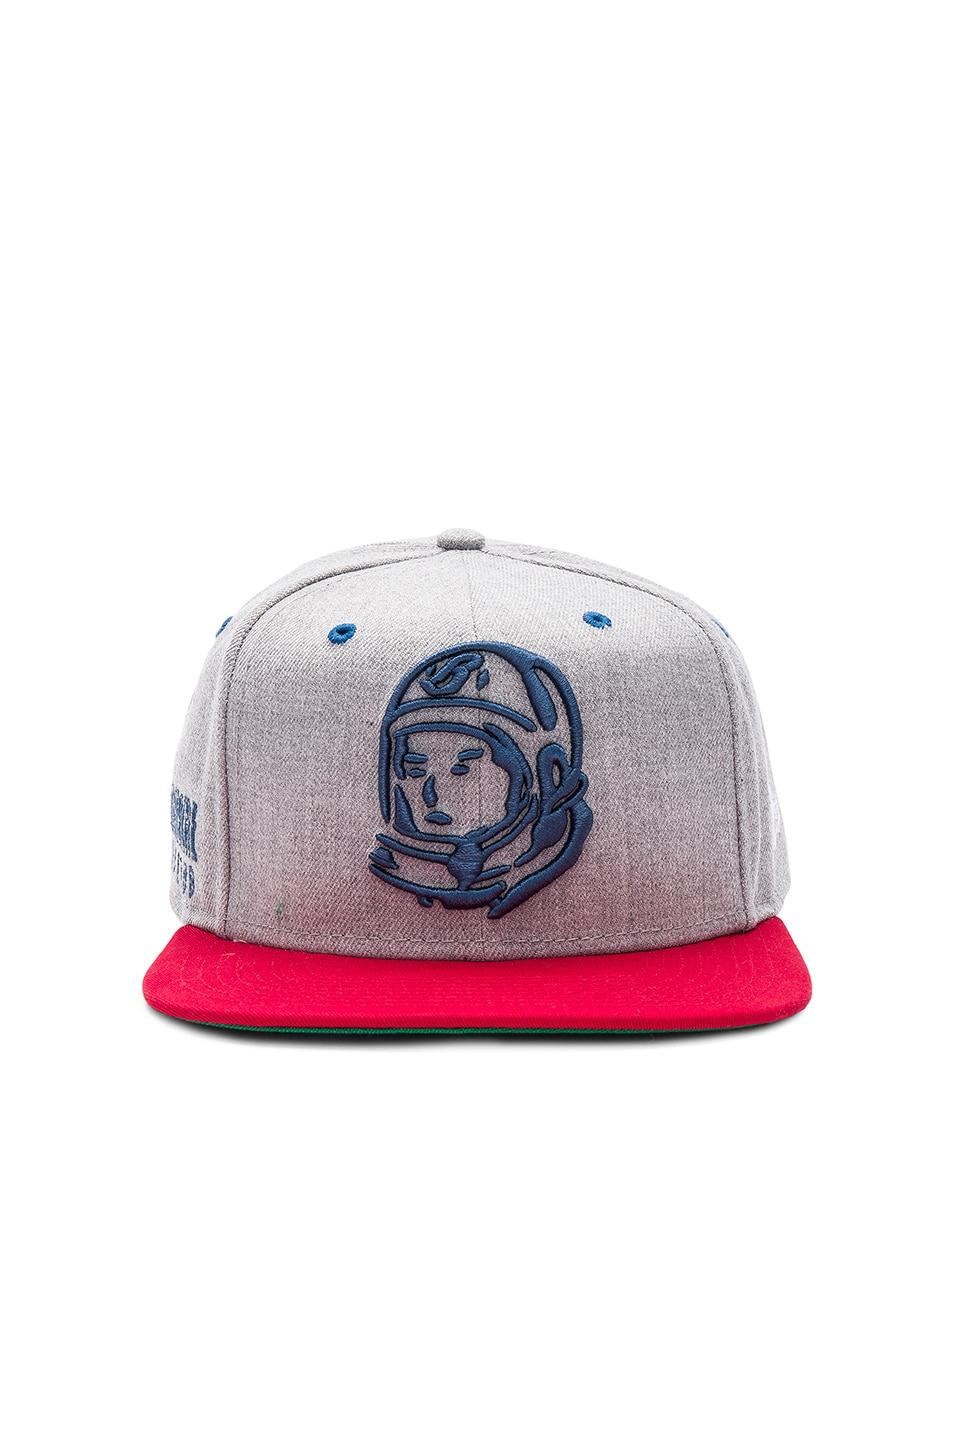 Billions Snapback by Billionaire Boys Club